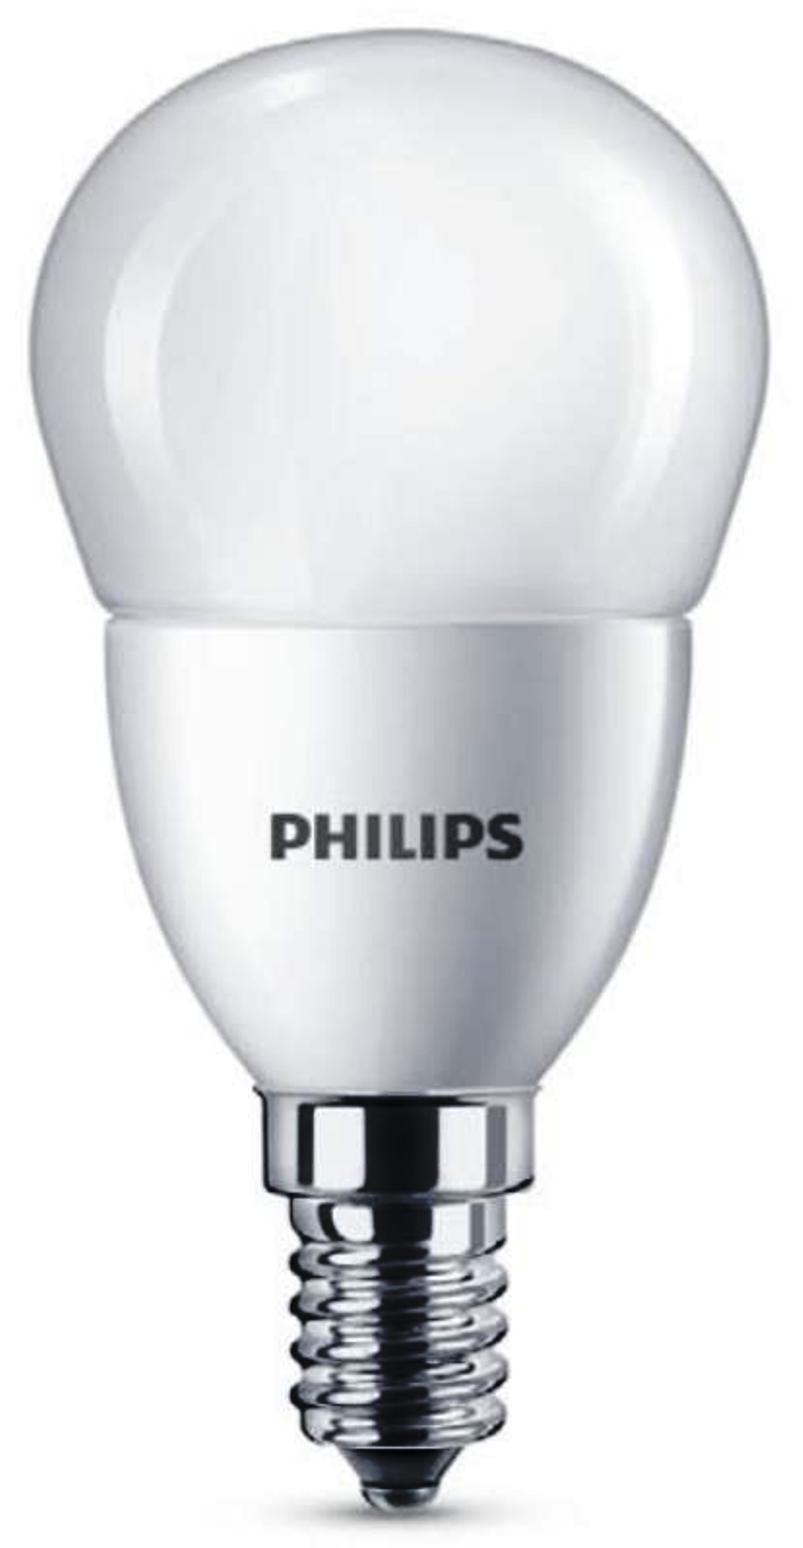 Philips Лампа LED 6.5W E14 4000K 230V P45N PHILIPS